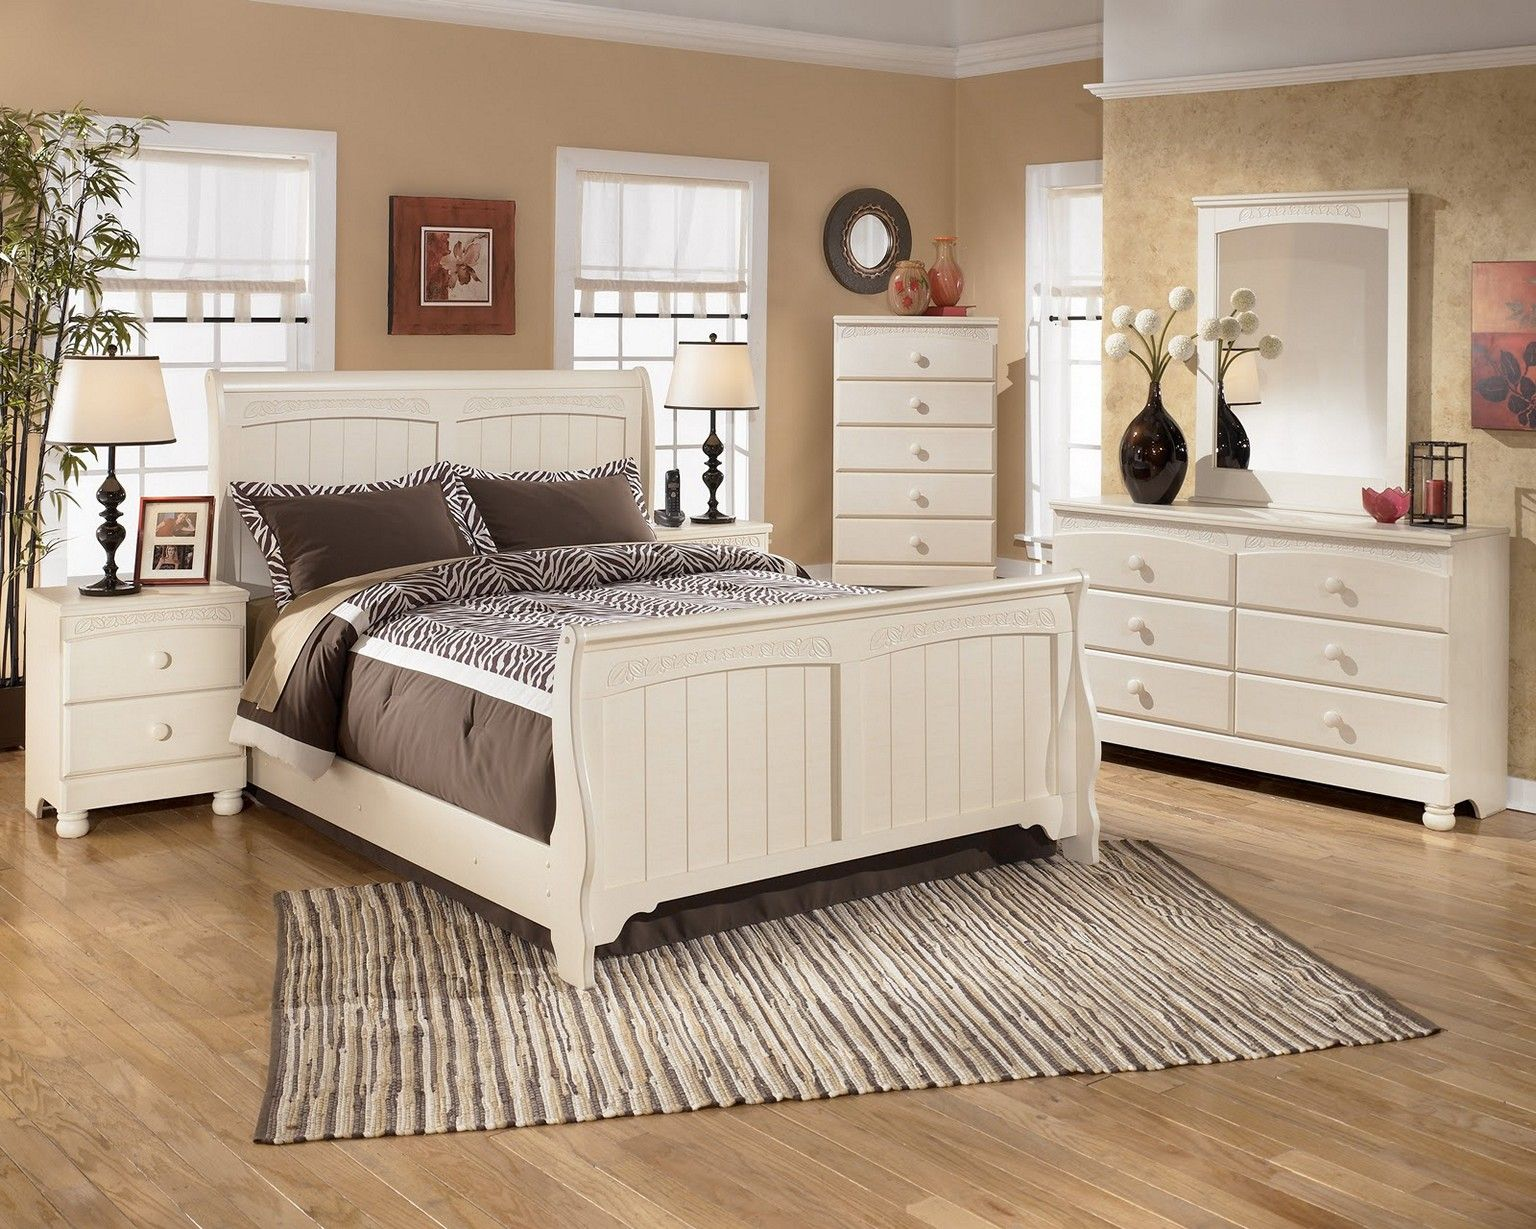 Bedroom Furniture Sets Shabby Chic   Replacing The Furniture And When  Redecorating Your House, Youu0027ve Got To Look At Every In